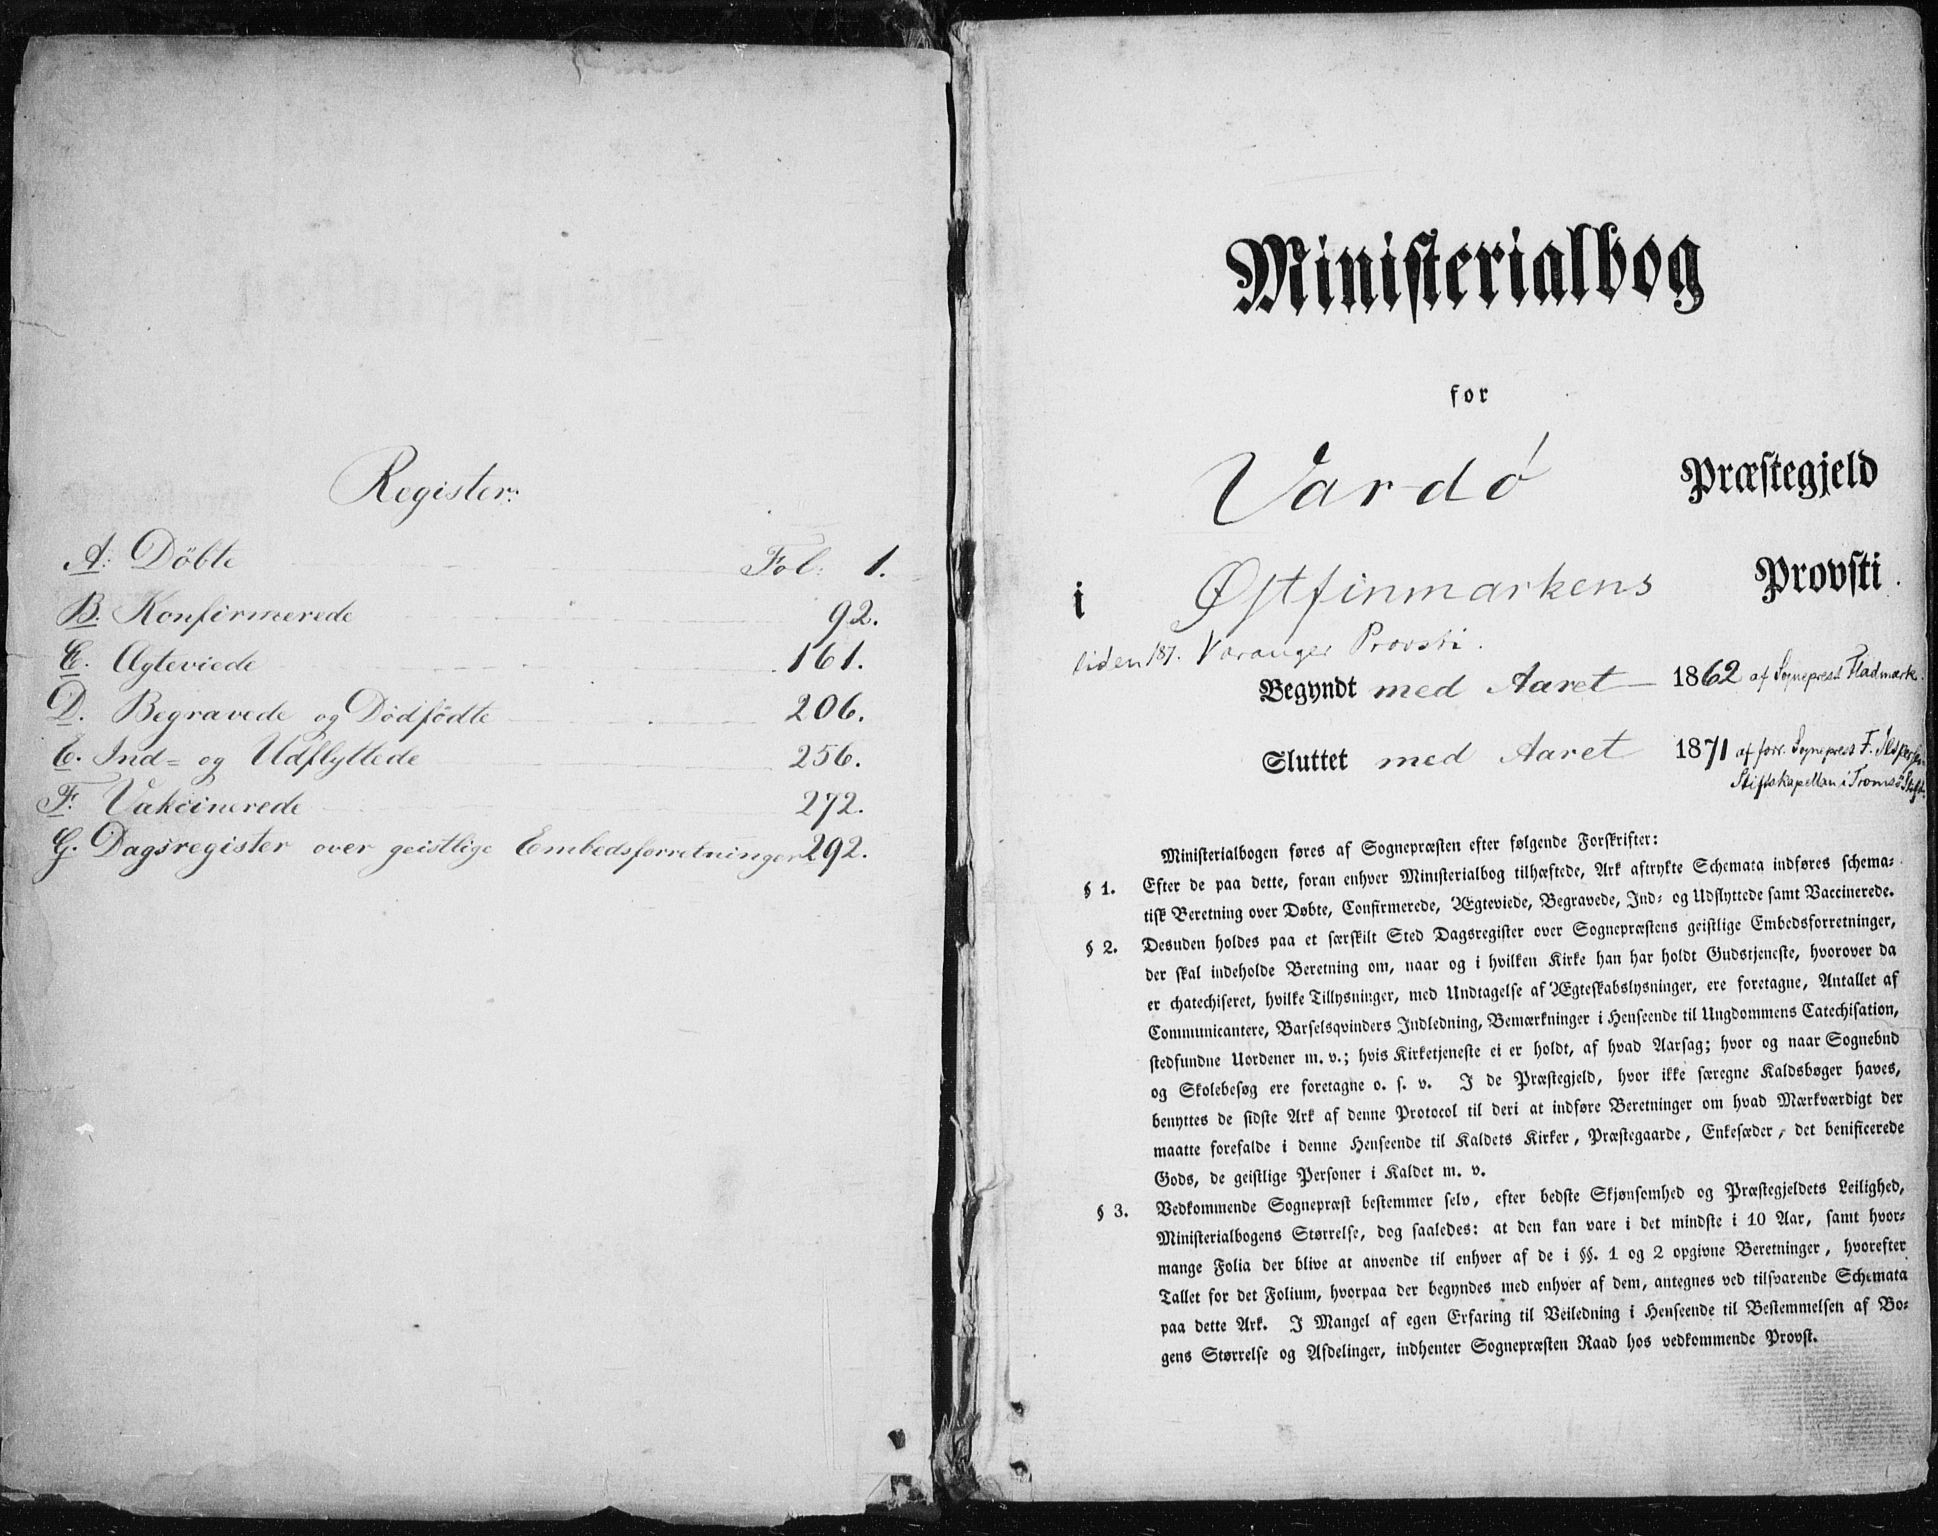 SATØ, Vardø sokneprestkontor, H/Ha/L0004kirke: Parish register (official) no. 4, 1862-1871